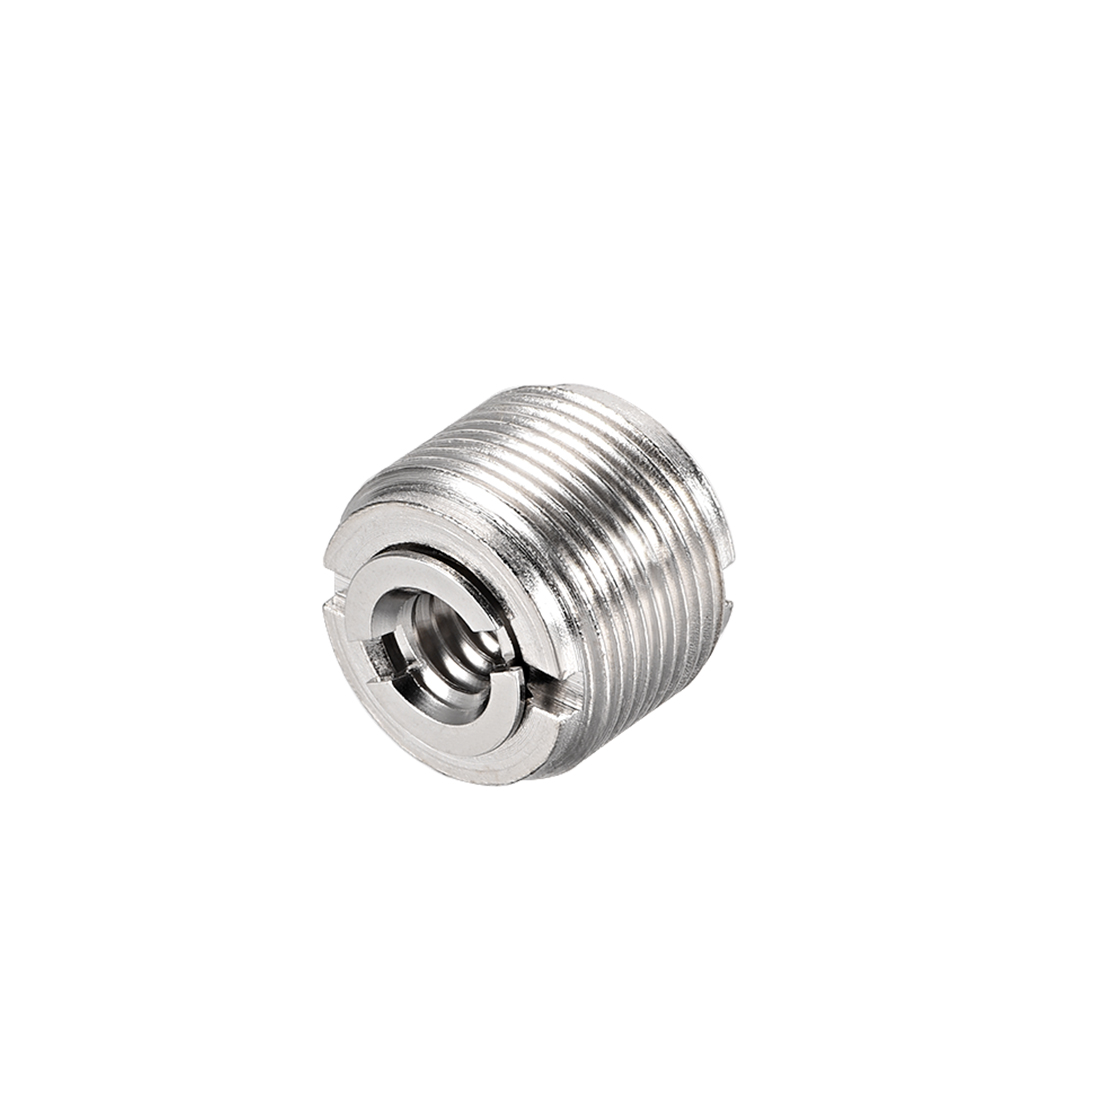 """1/4 Female To 5/8"""" Male Threaded Screw Adapter For Microphone Tripod Stand 1pcs"""